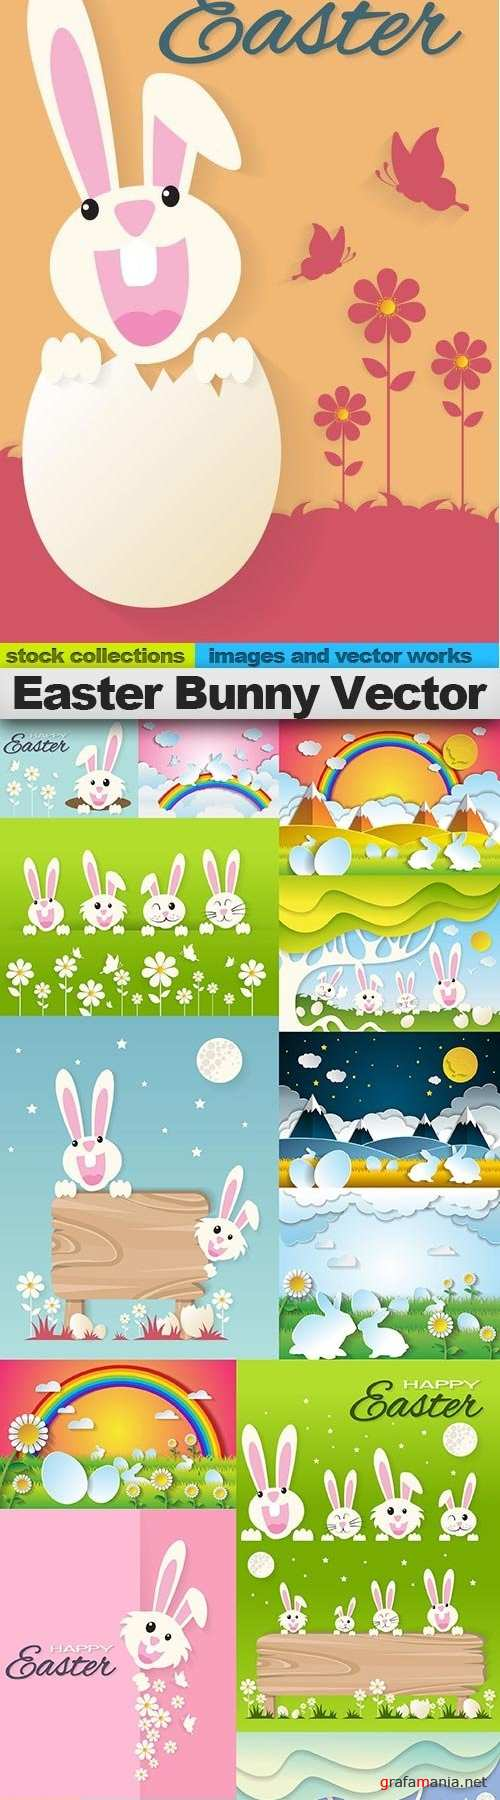 Easter Bunny Vector, 15 x EPS